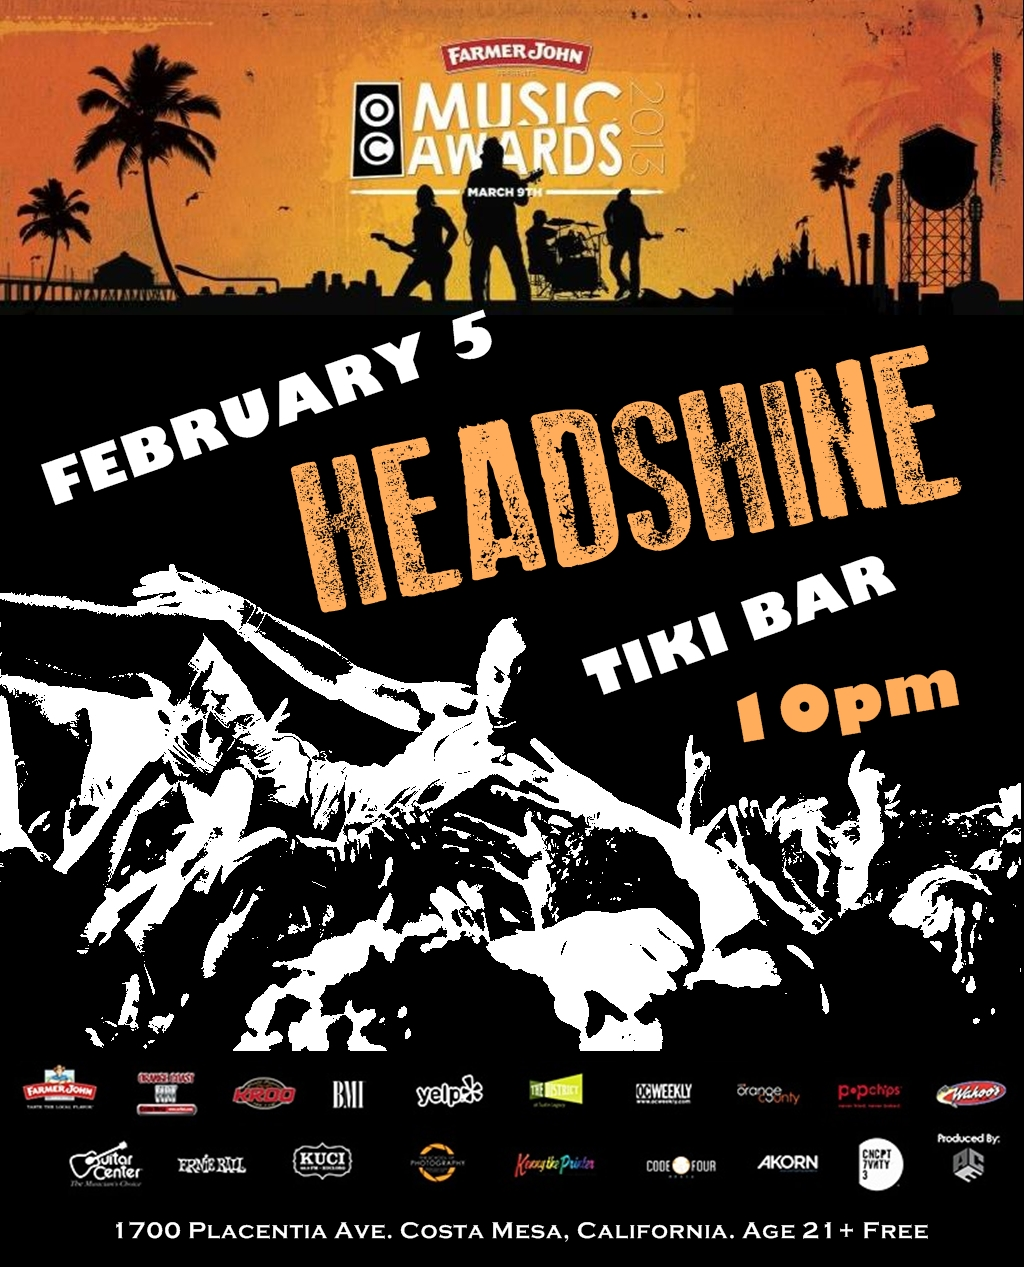 Headshine nominated for 2013 OC Music Awards